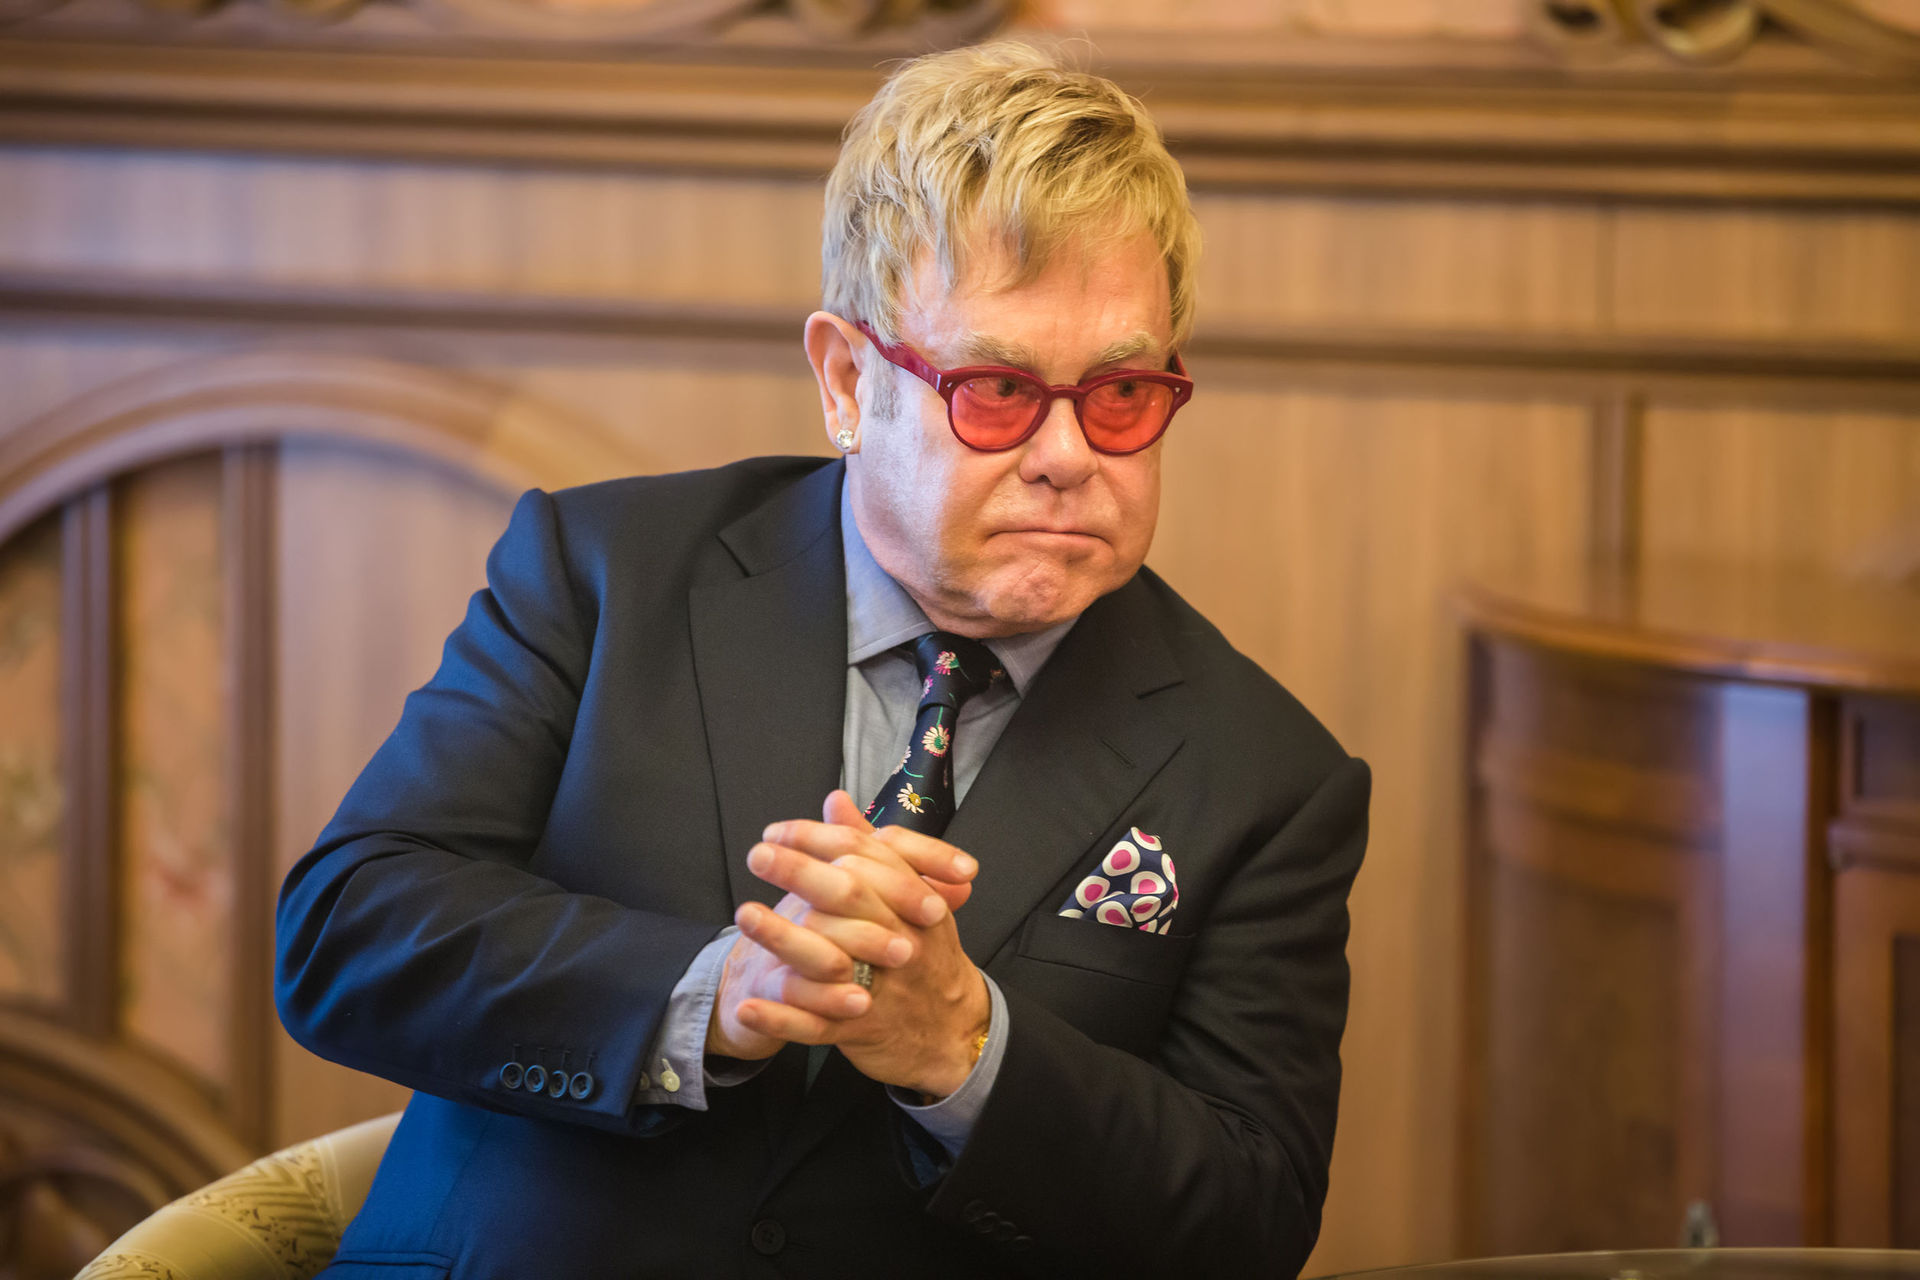 Elton John defends Meghan Markle and Prince Harry over use of private jet on lavish trip